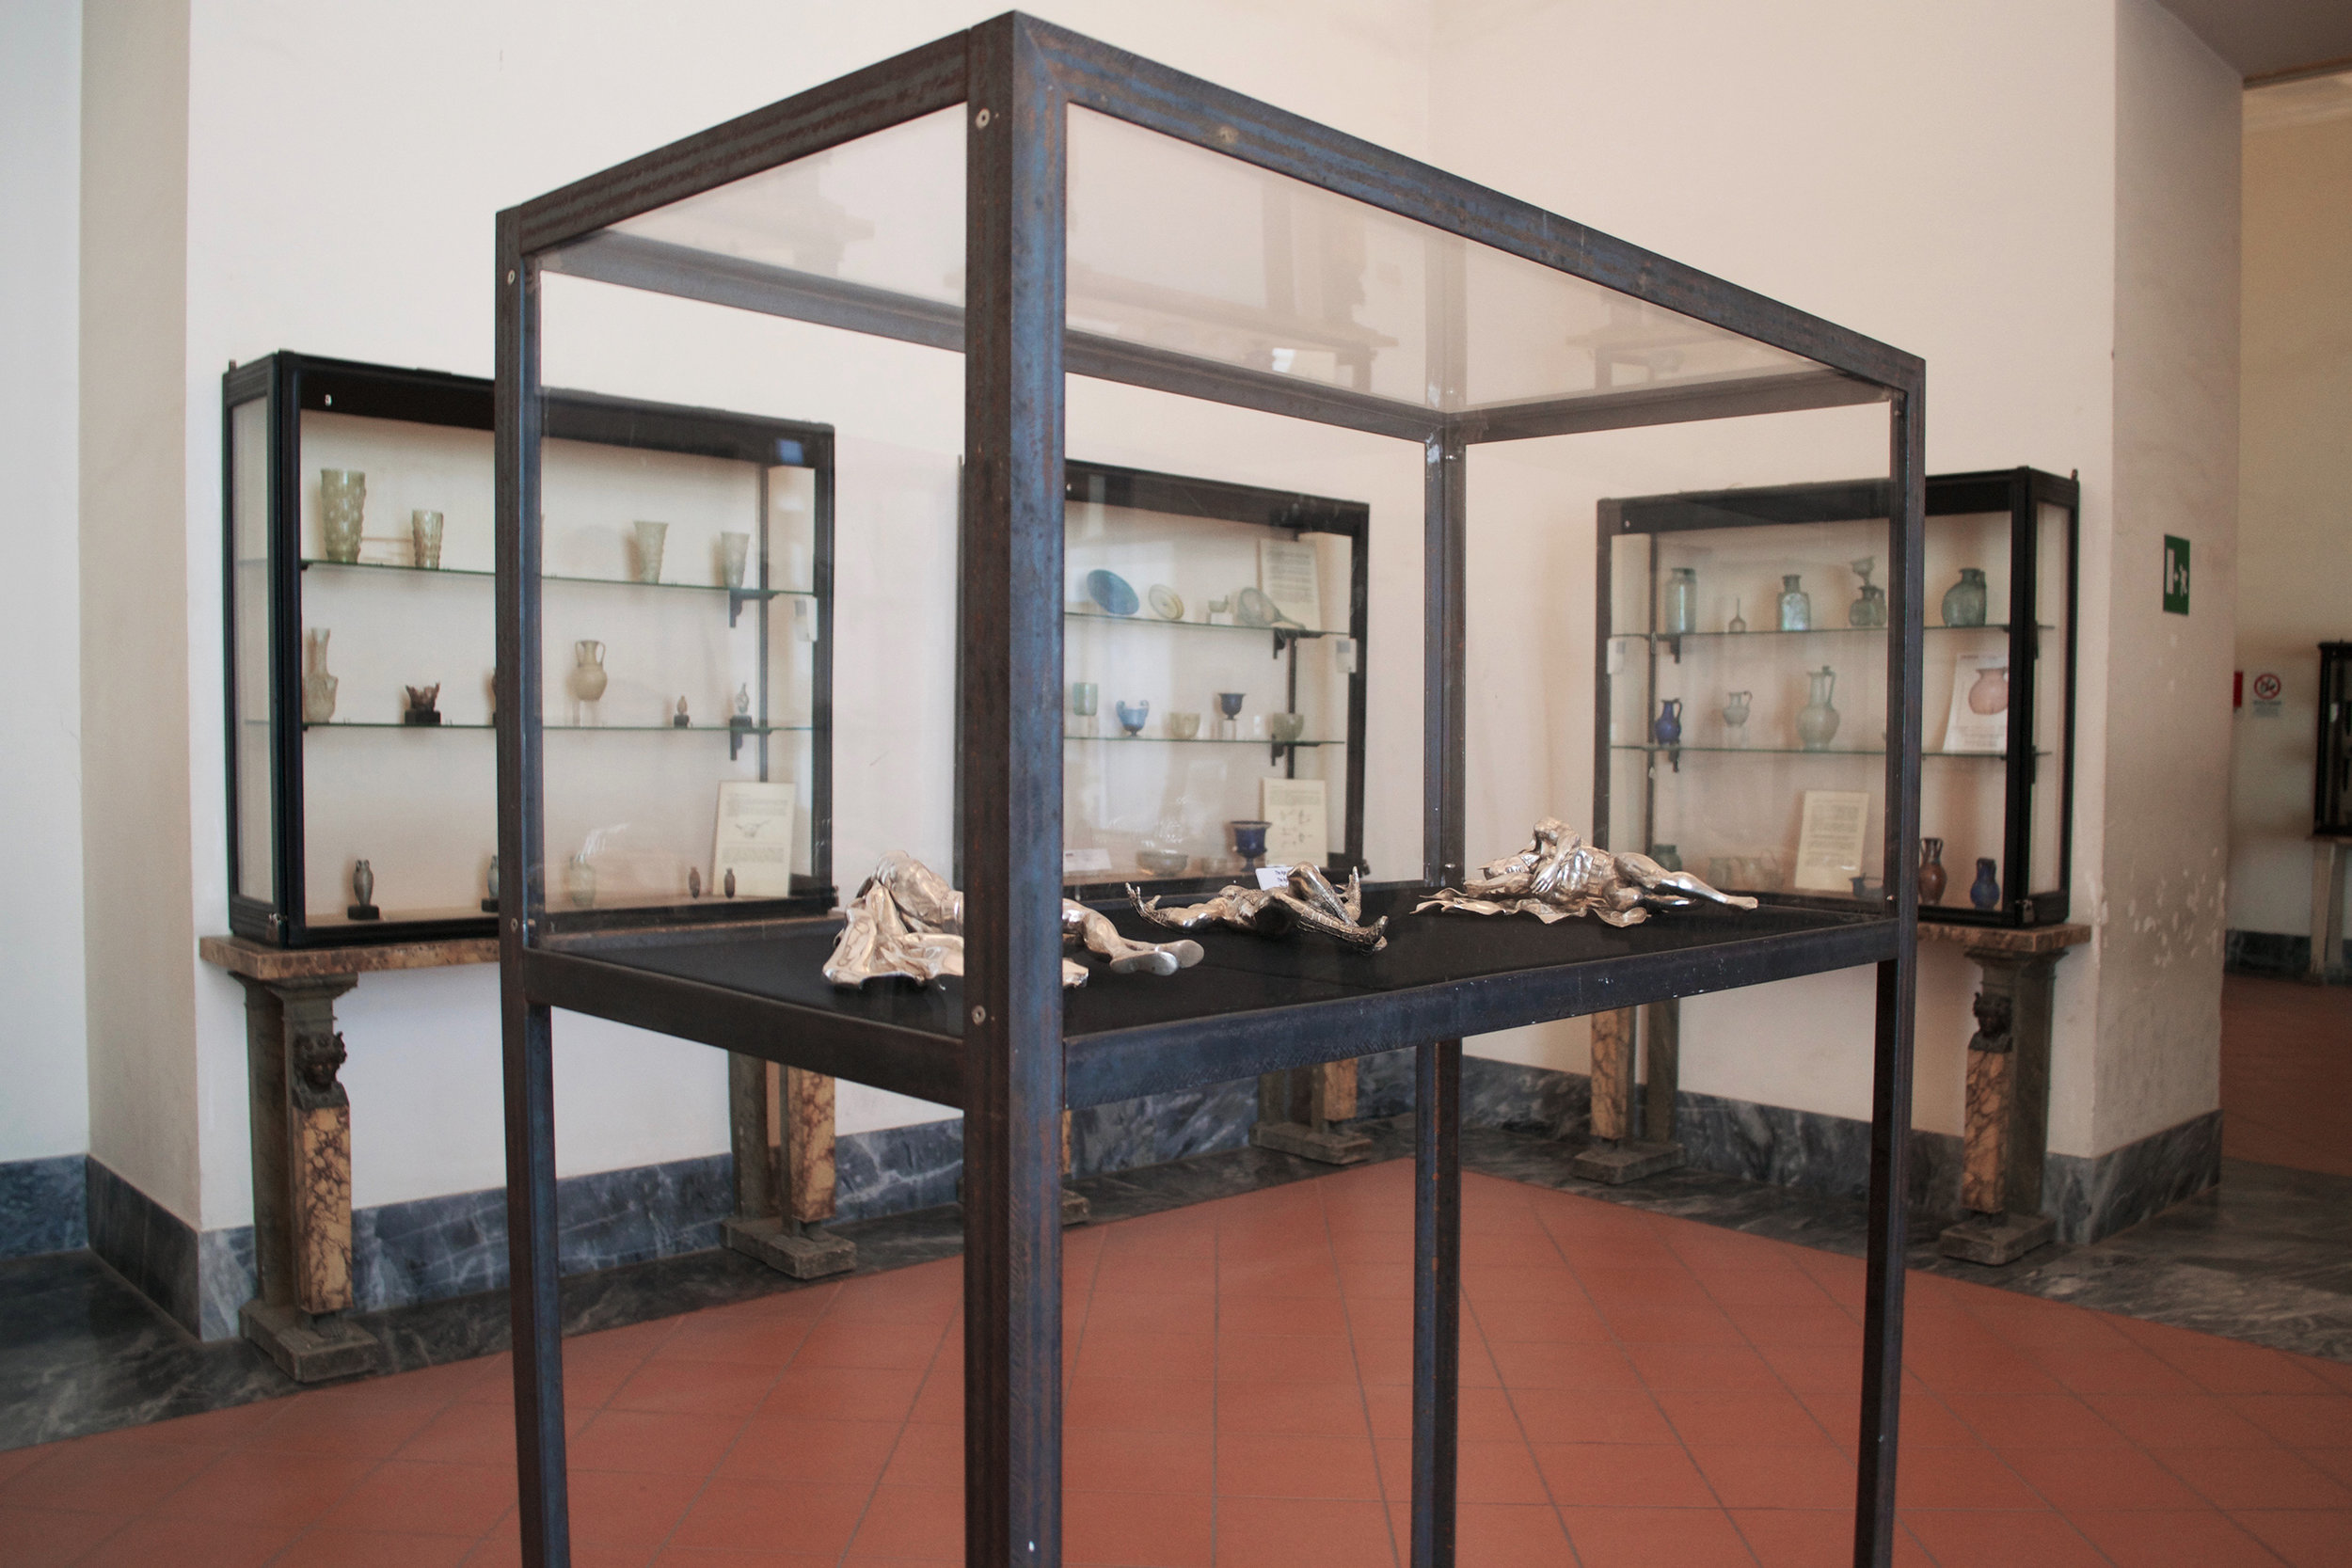 The Age of Chance , 2005 . MANN - Museo Archeologico Nazionale di Napoli, Naples 2016. Installation view. Photo: Studio Adrian Tranquilli